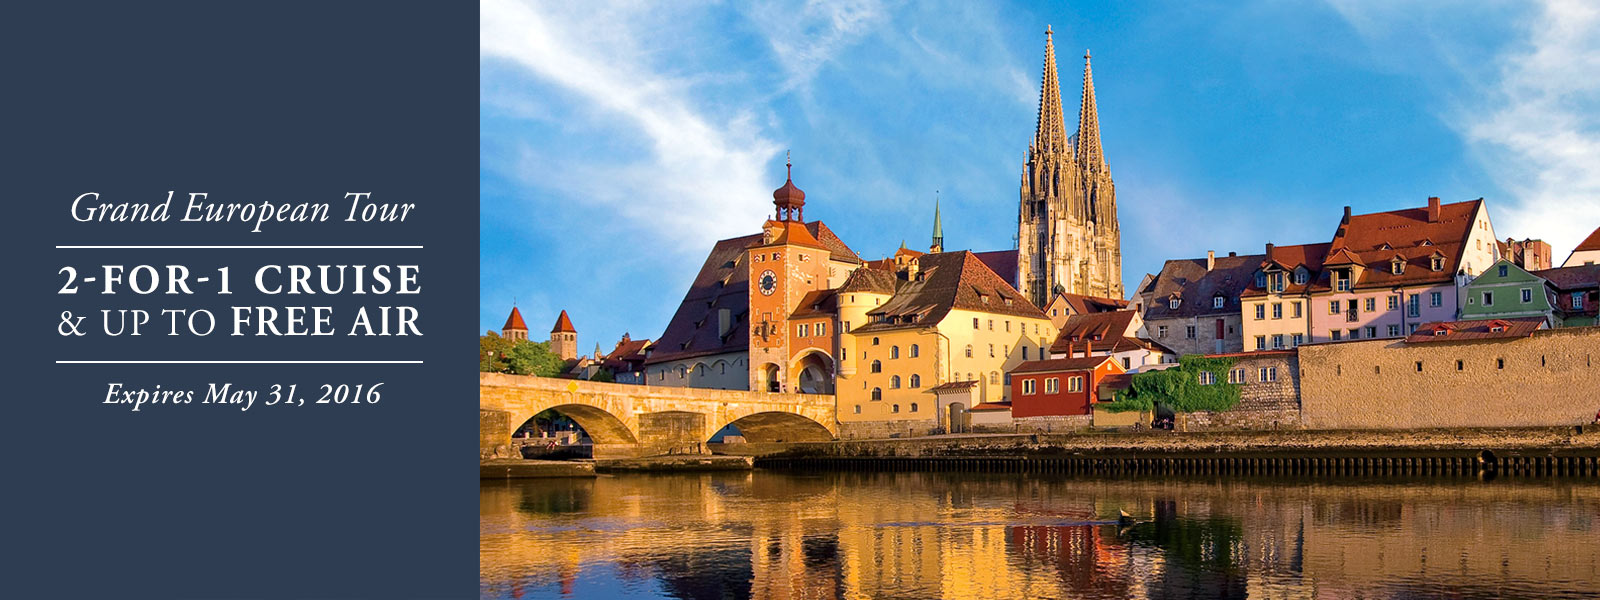 Viking River cruises offer 2 for 1 cruises and up to free air for 2017 River Cruises. From EnjoyVacationing.com